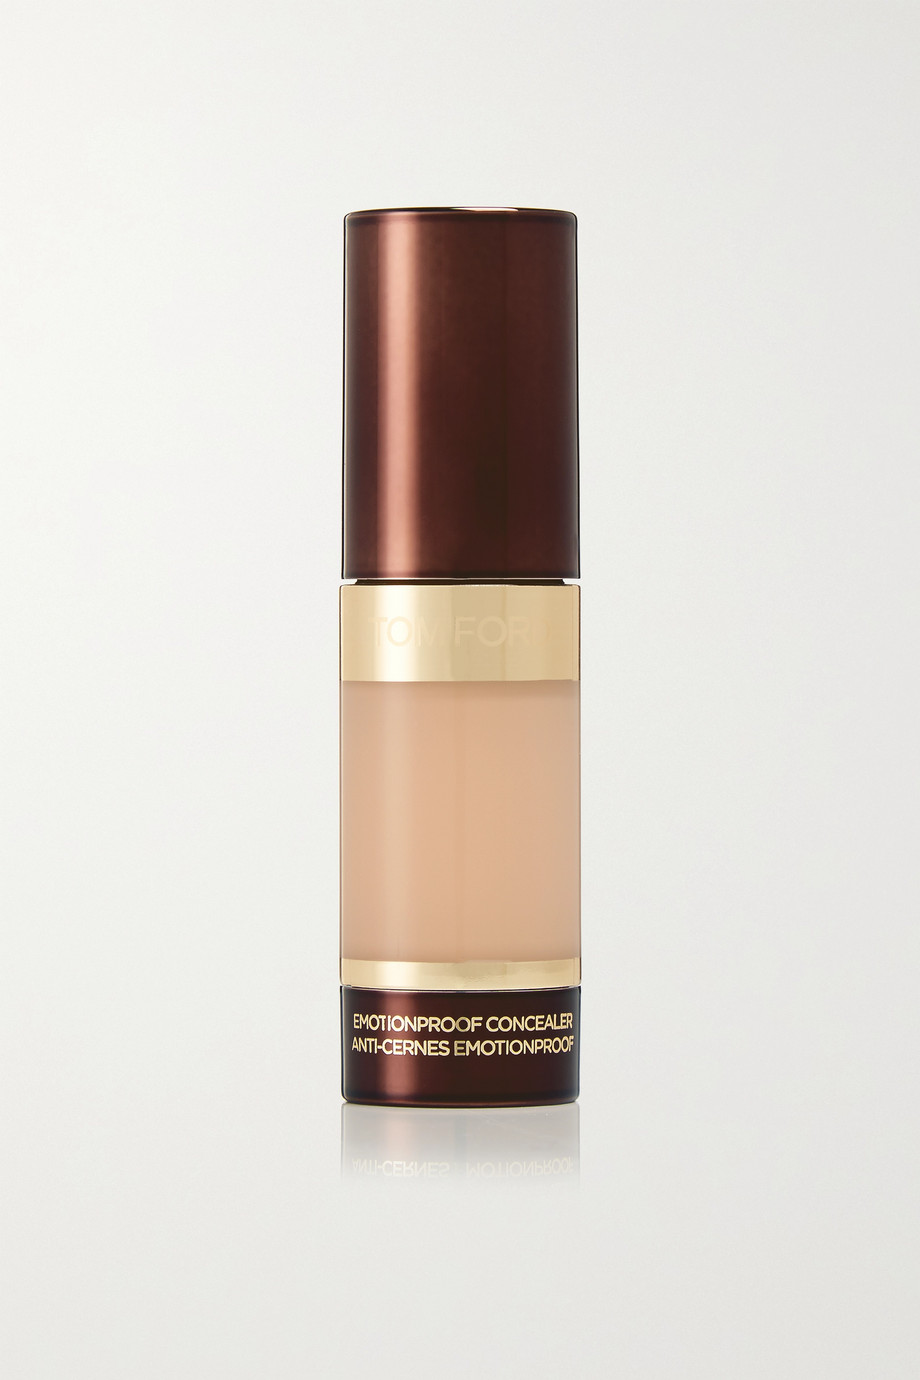 TOM FORD BEAUTY Anti-cernes Emotionproof, Fawn 4.0